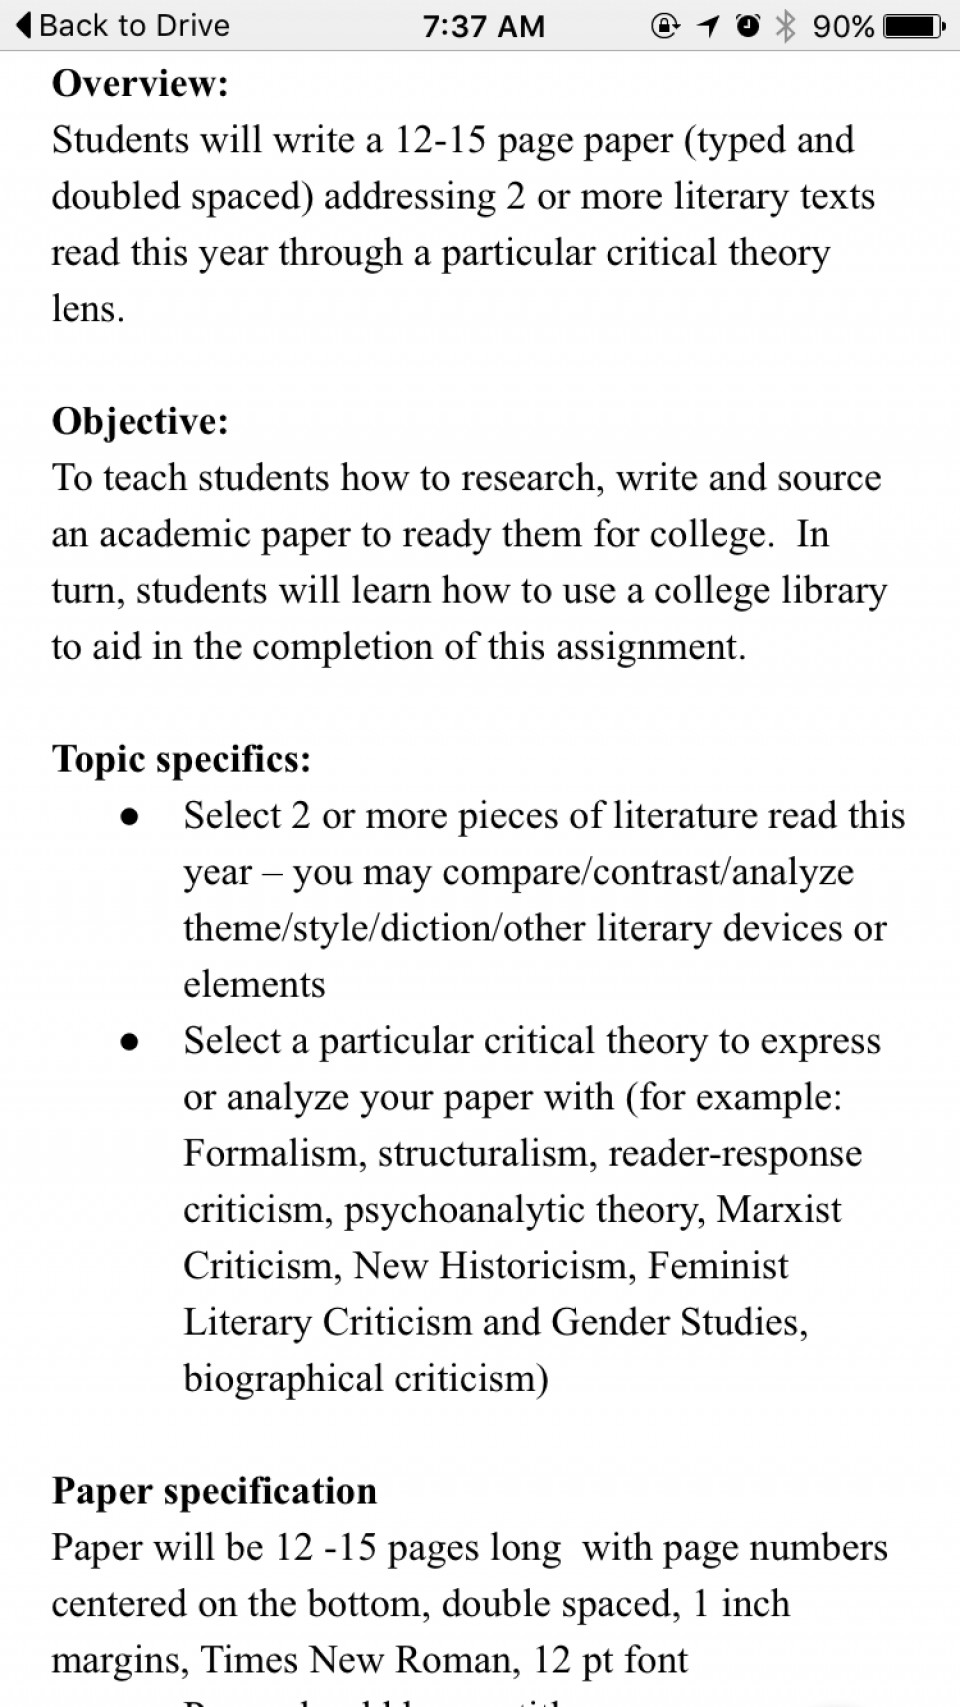 010 College Education Research Paper Topics Research20paper20image Singular 960